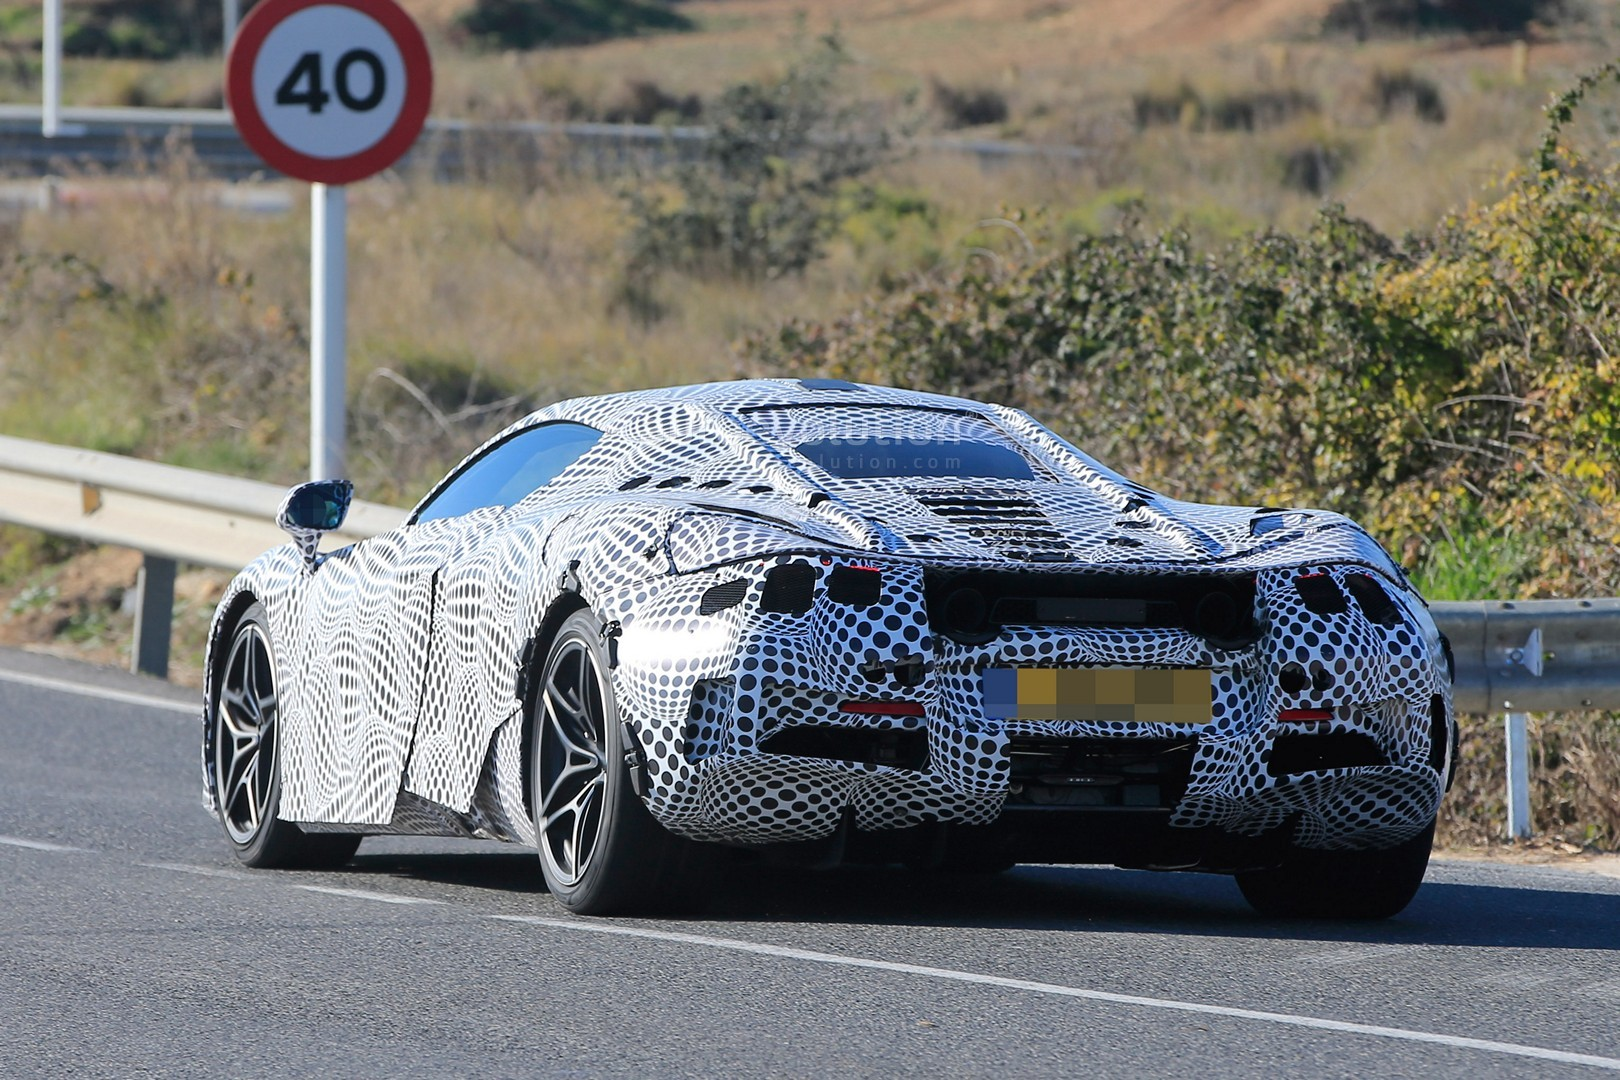 2018 Mclaren 720s P14 Spied With Black And White